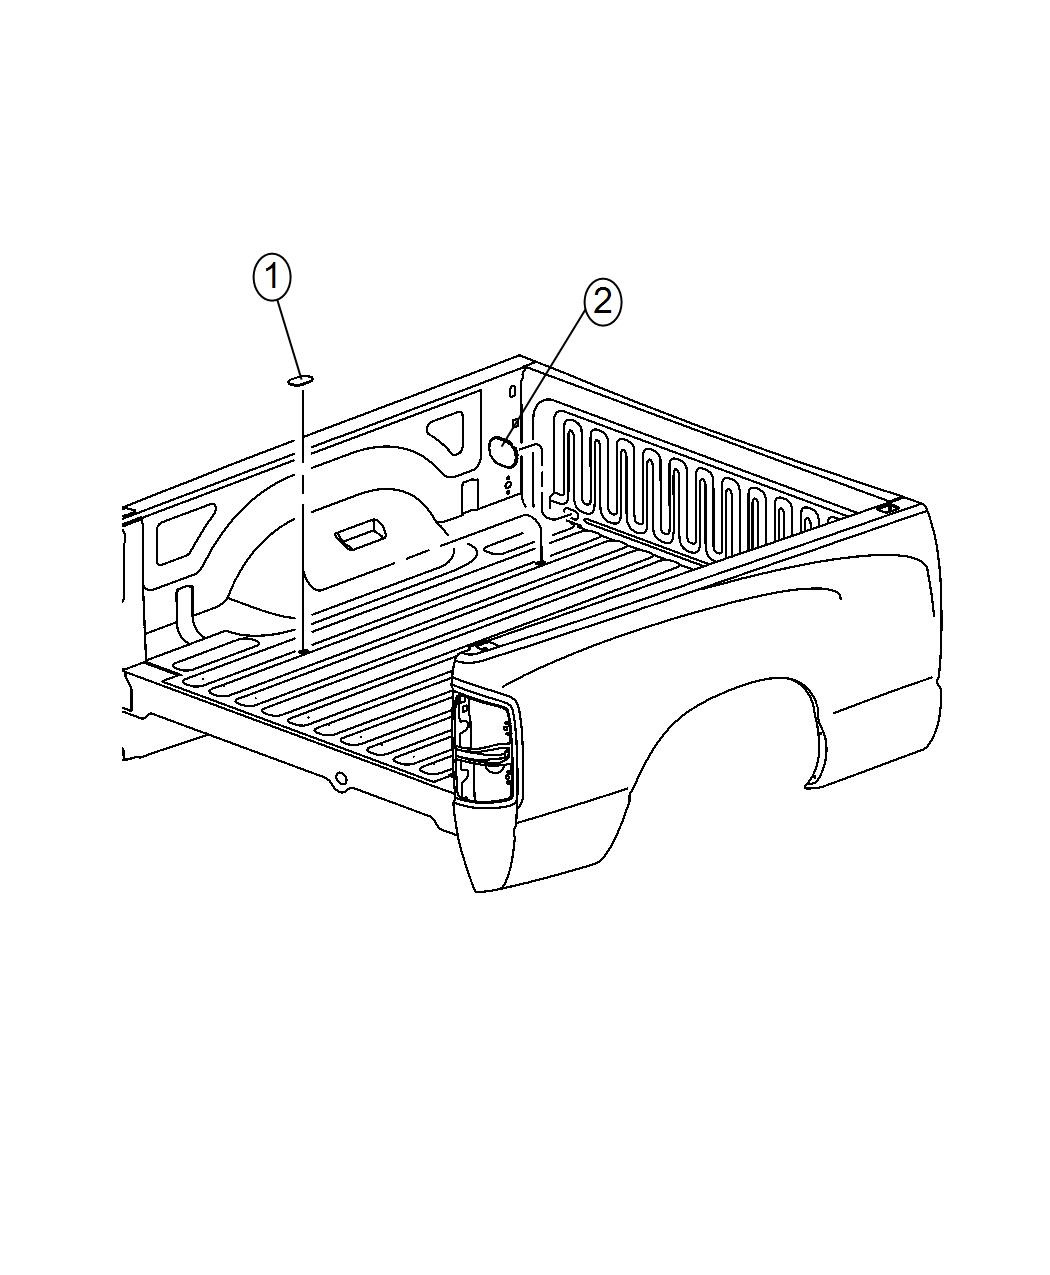 2017 Ram 2500 Cover kit. Trailer tow. [5th wheel/gooseneck